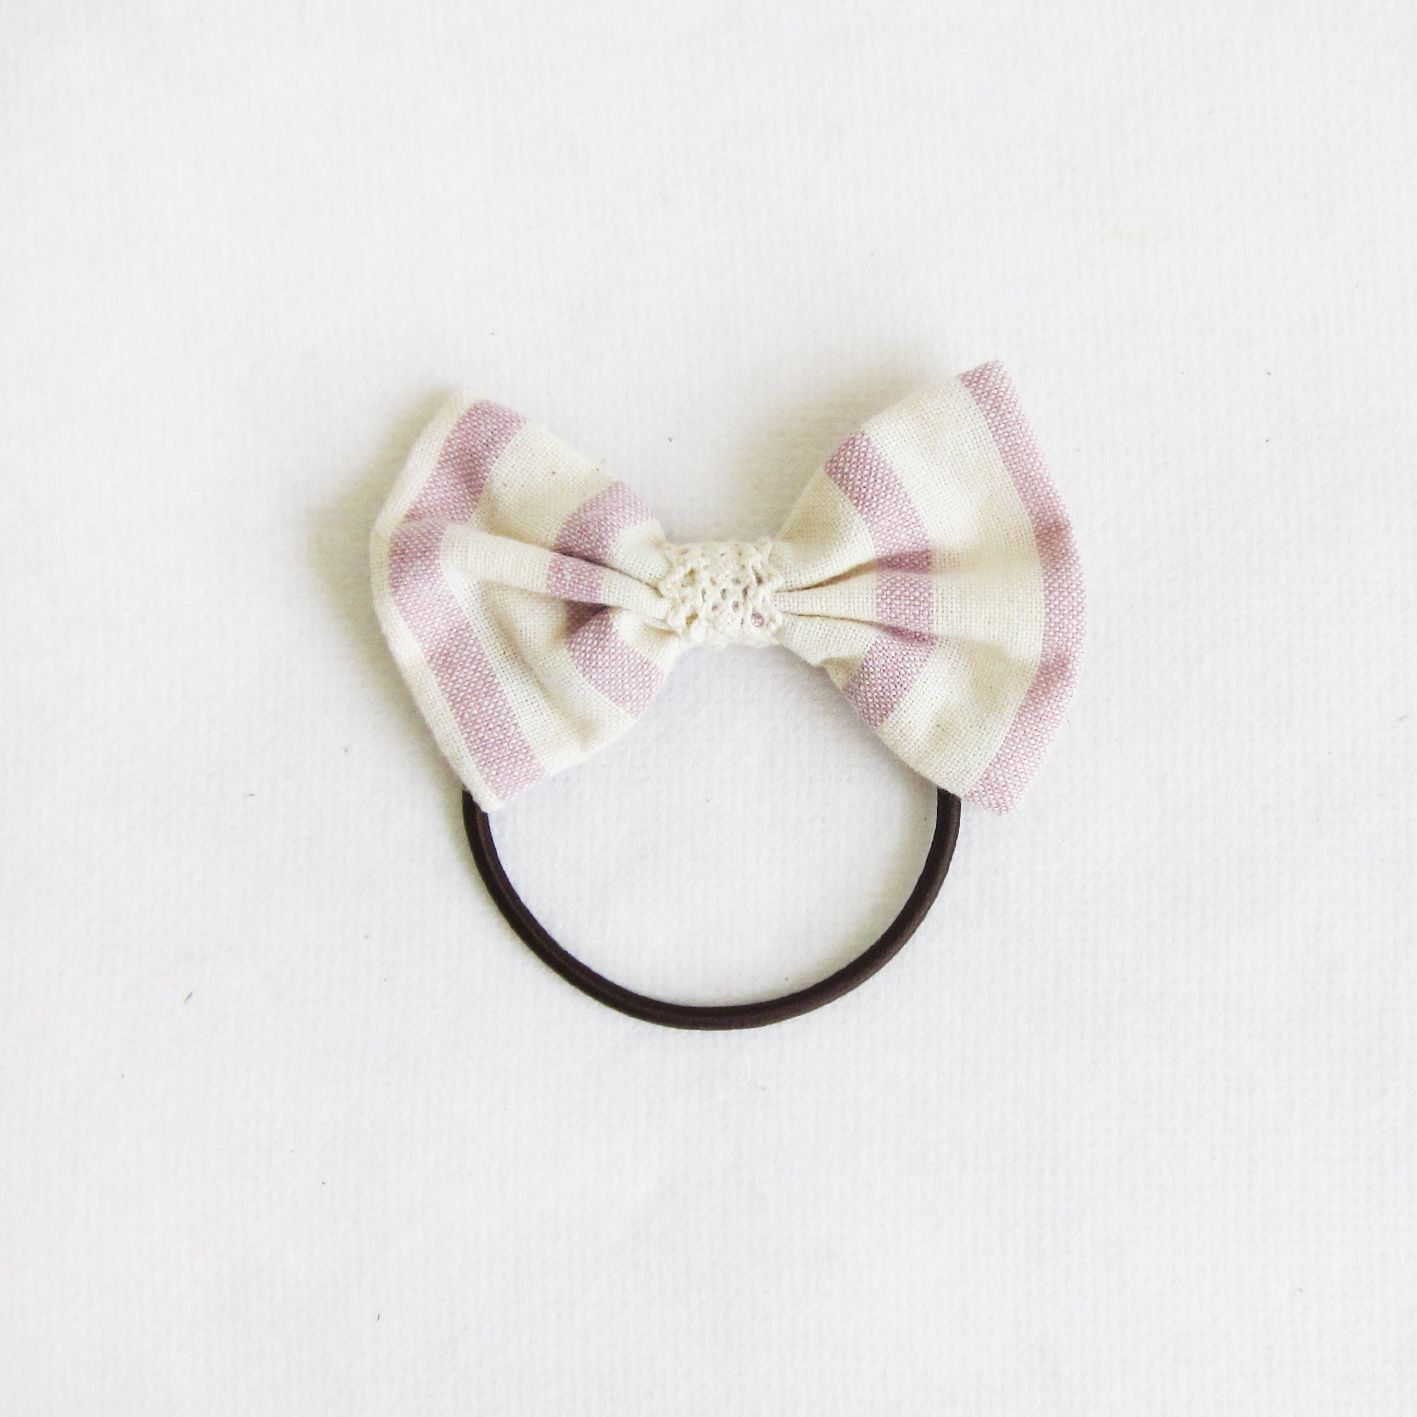 Handmade Bow Hair Bands Natural Dyed Cotton-A106-www.tanbagshop.com